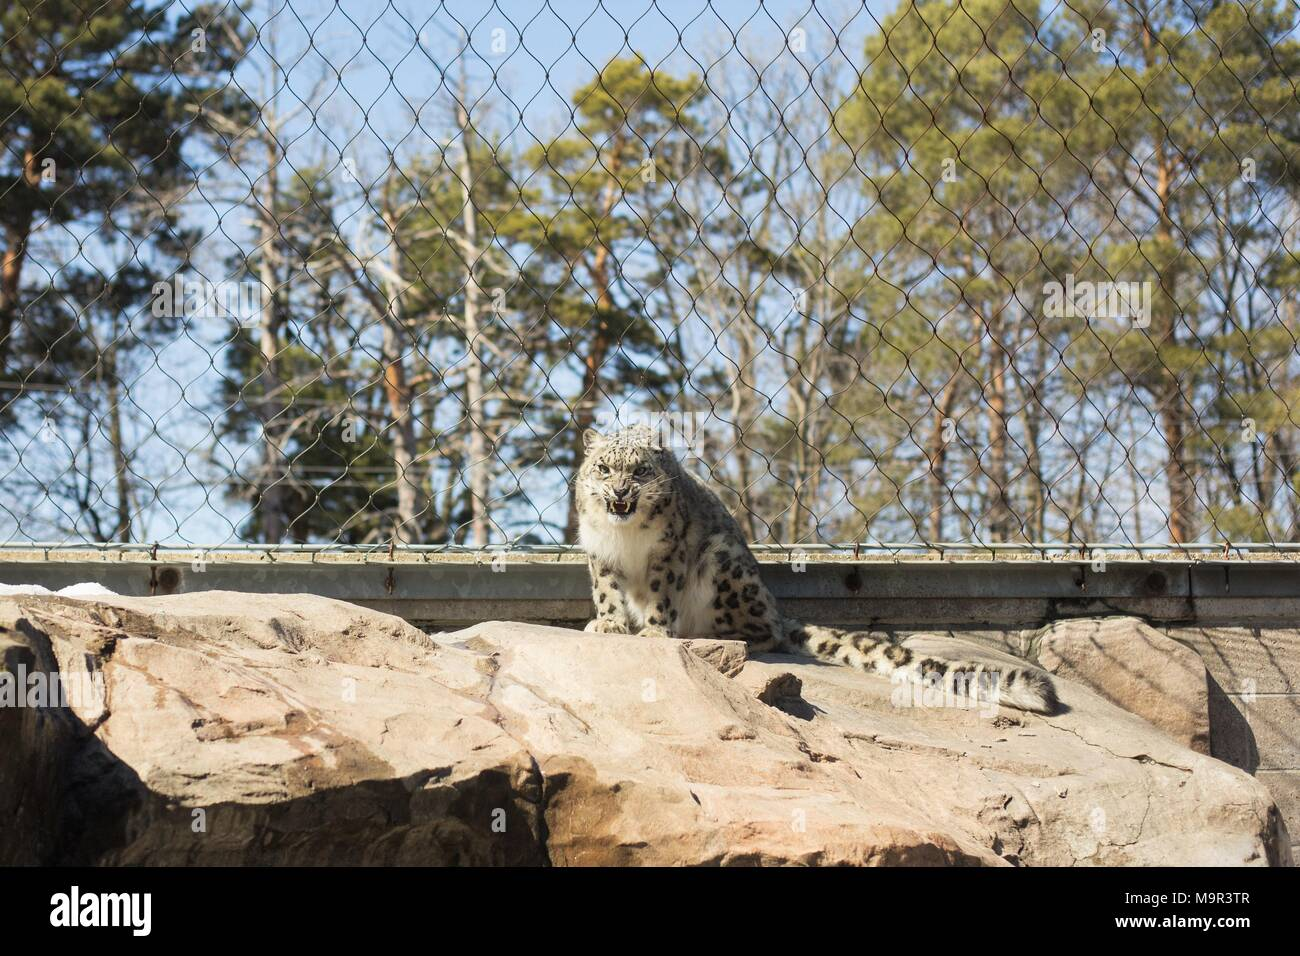 A snarling snow leopard in captivity. - Stock Image